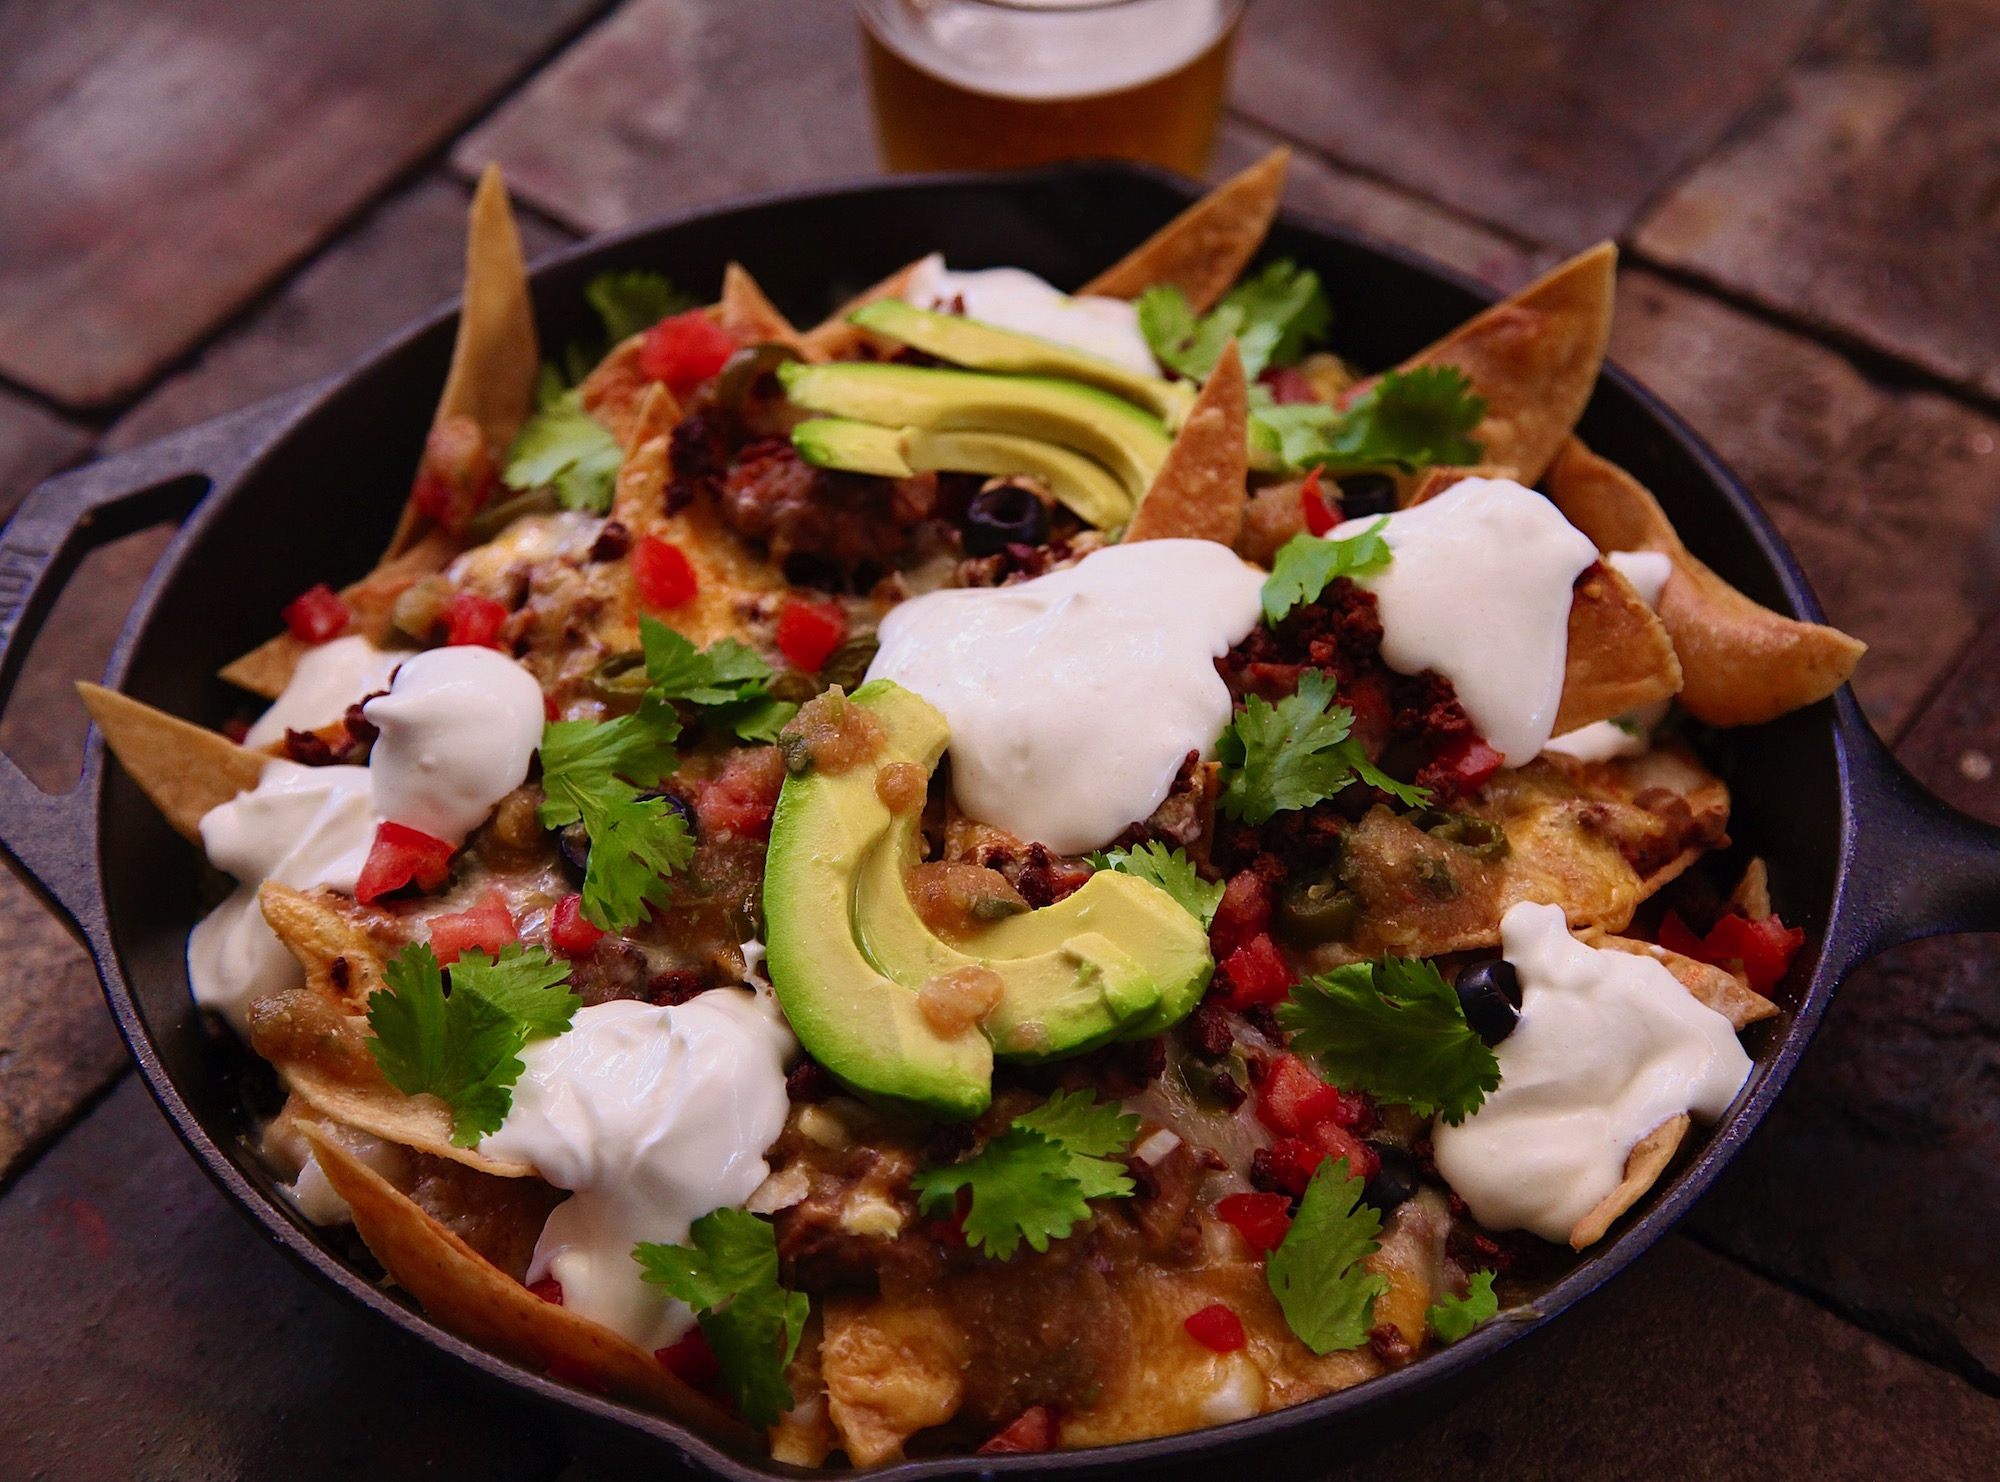 Loaded Los Angeles Nachos